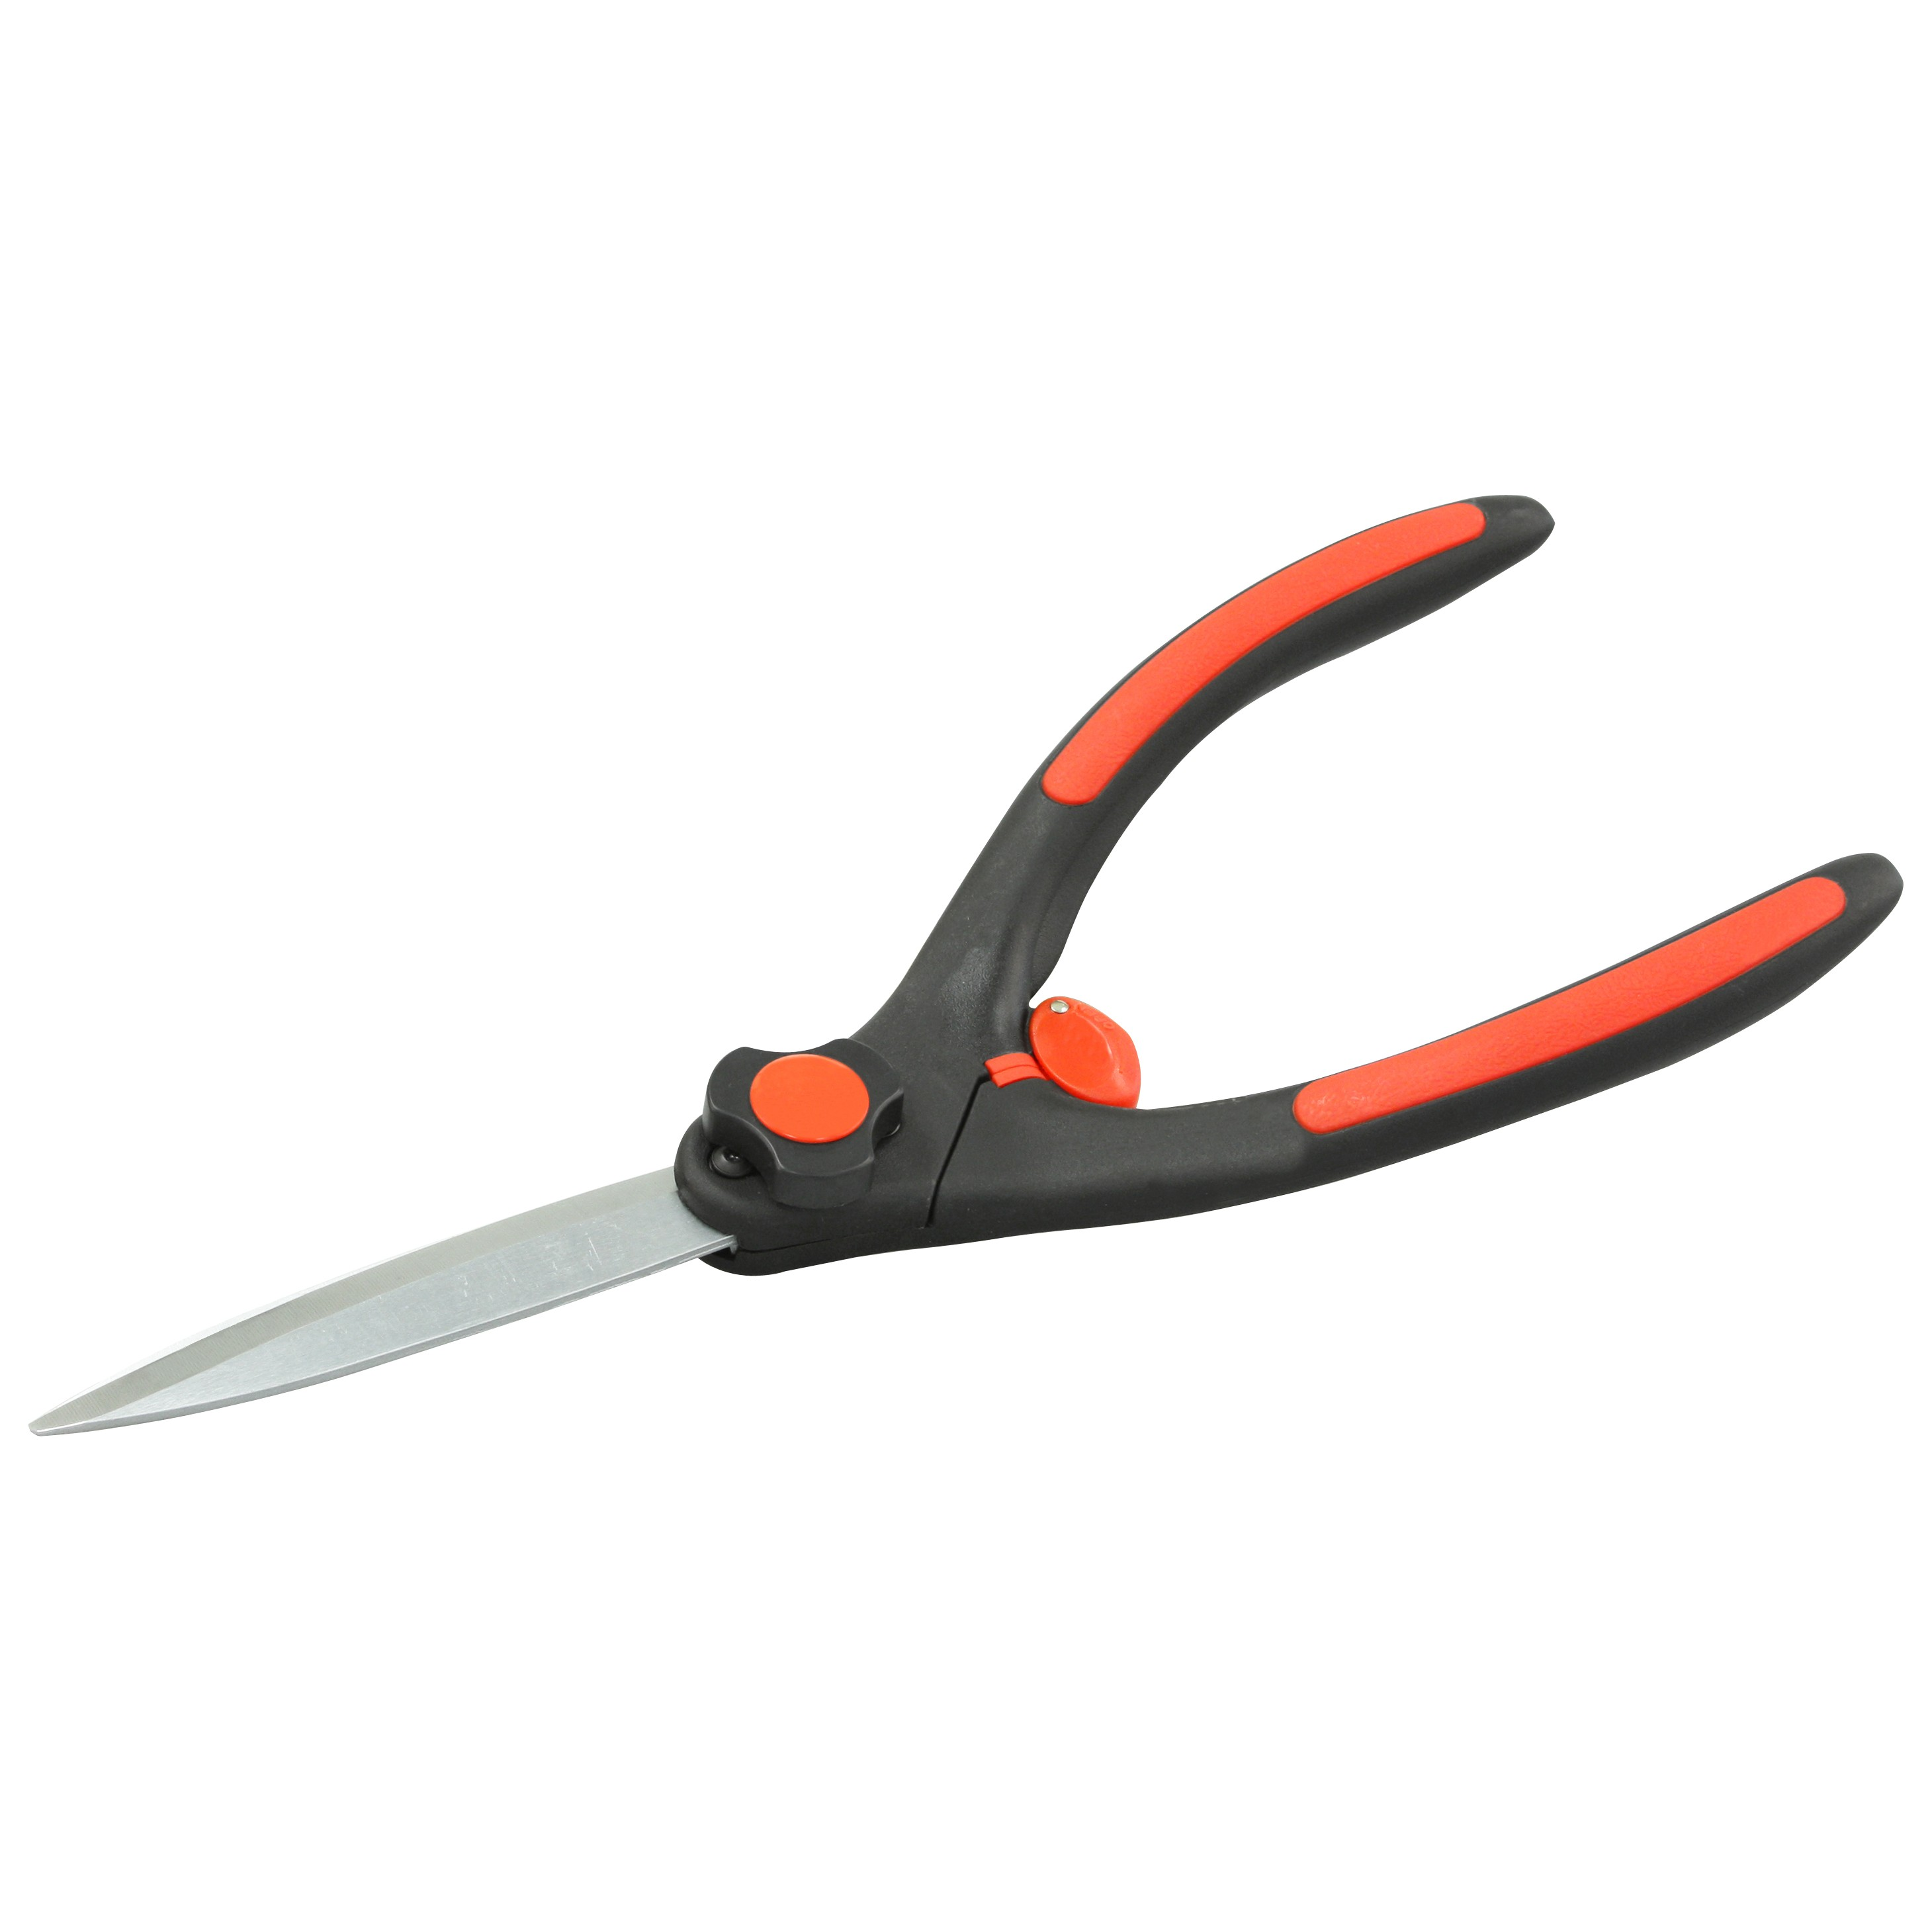 Garden tools equipment buy cheap gardening tools online for Cheap landscaping tools